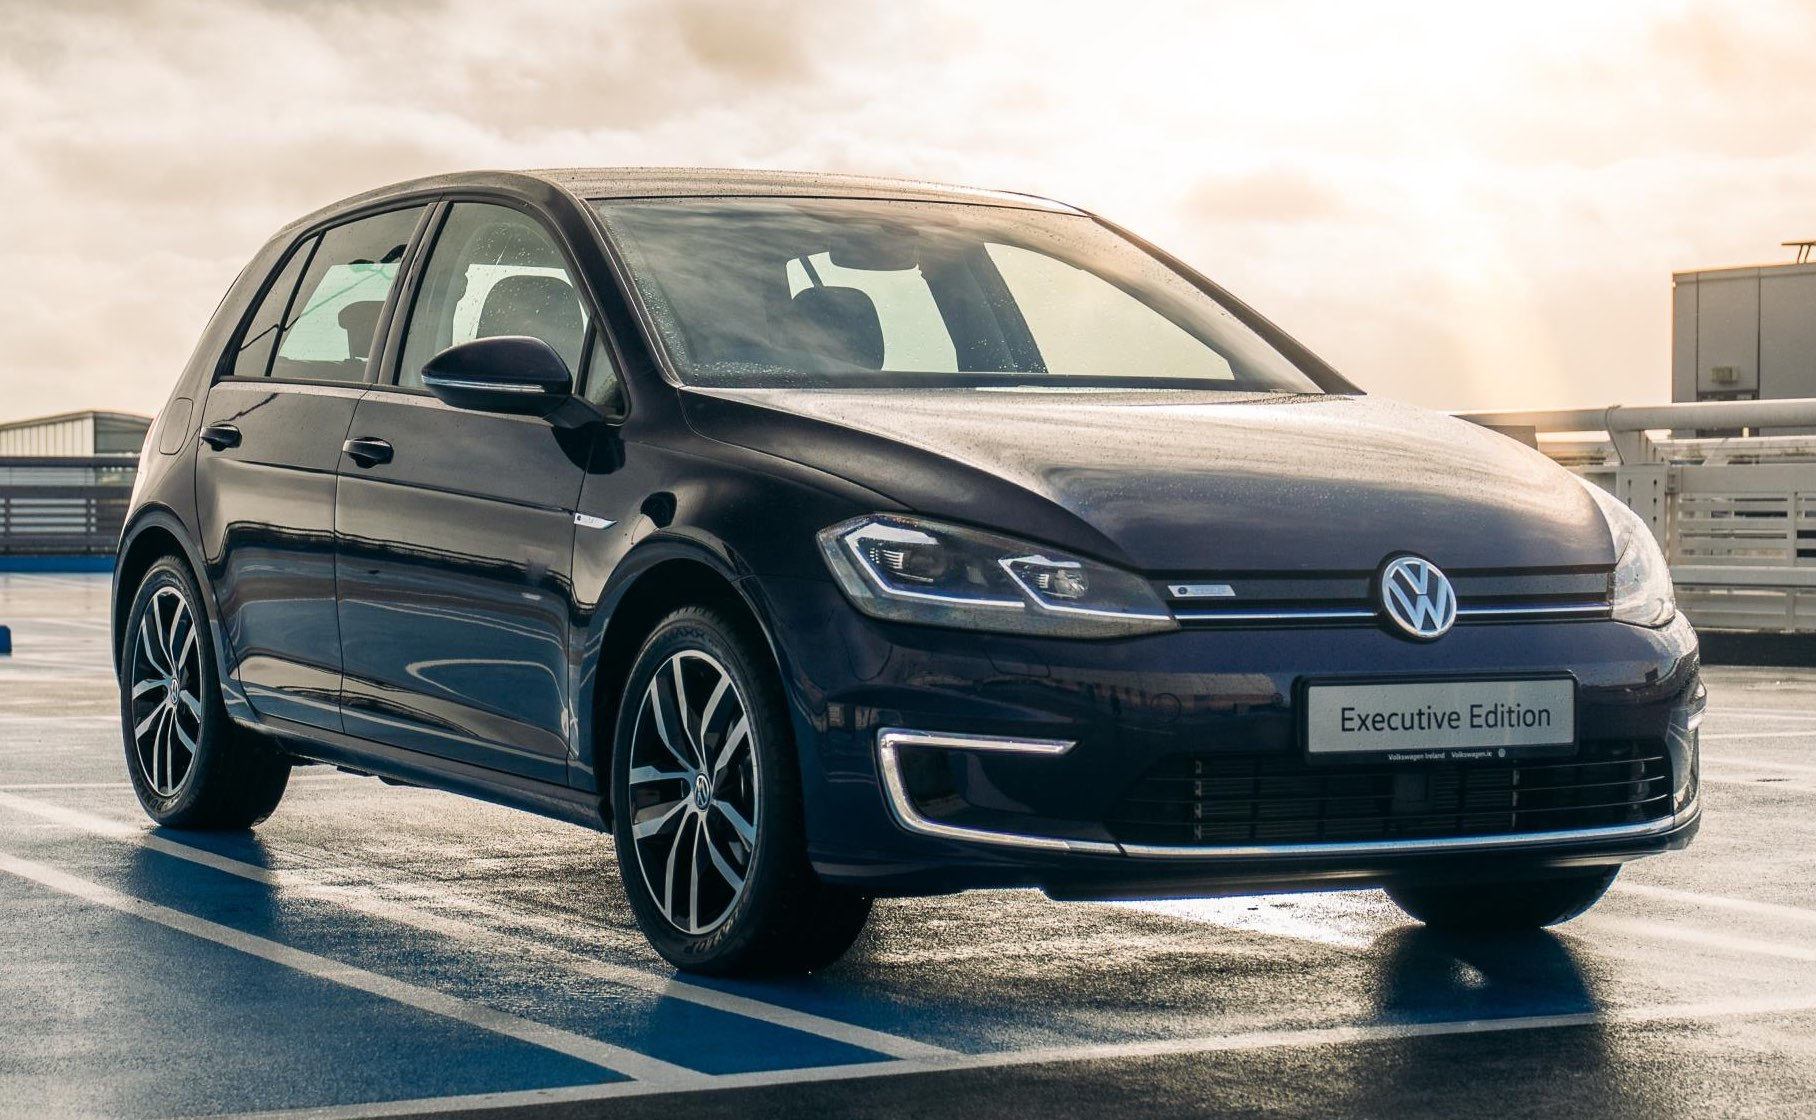 Volkswagen unveils new e-Golf 'Executive Edition'